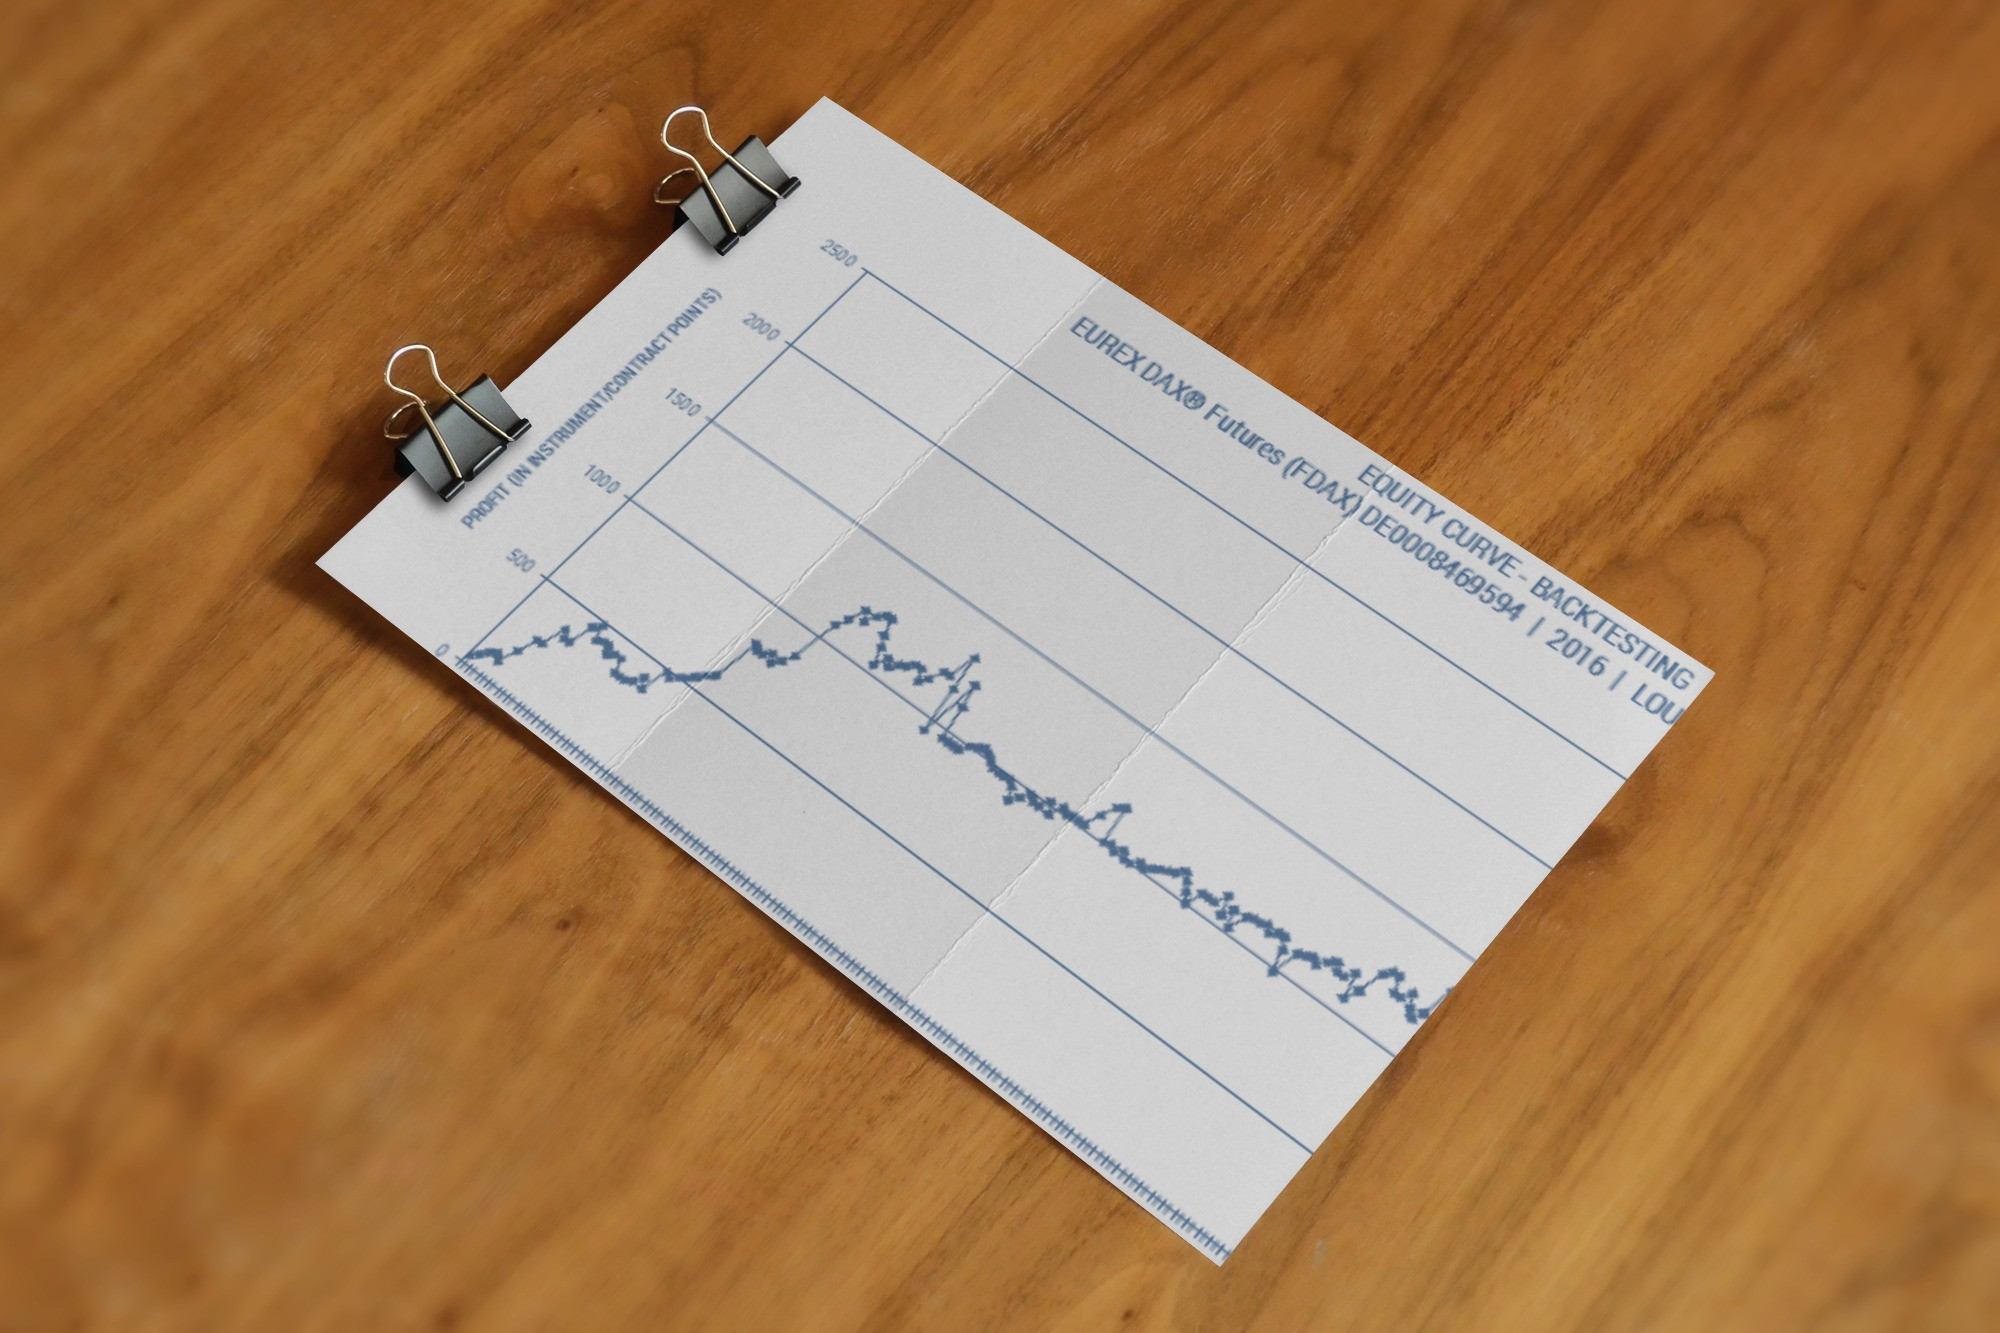 Using statistical filters to improve profitability - Towards